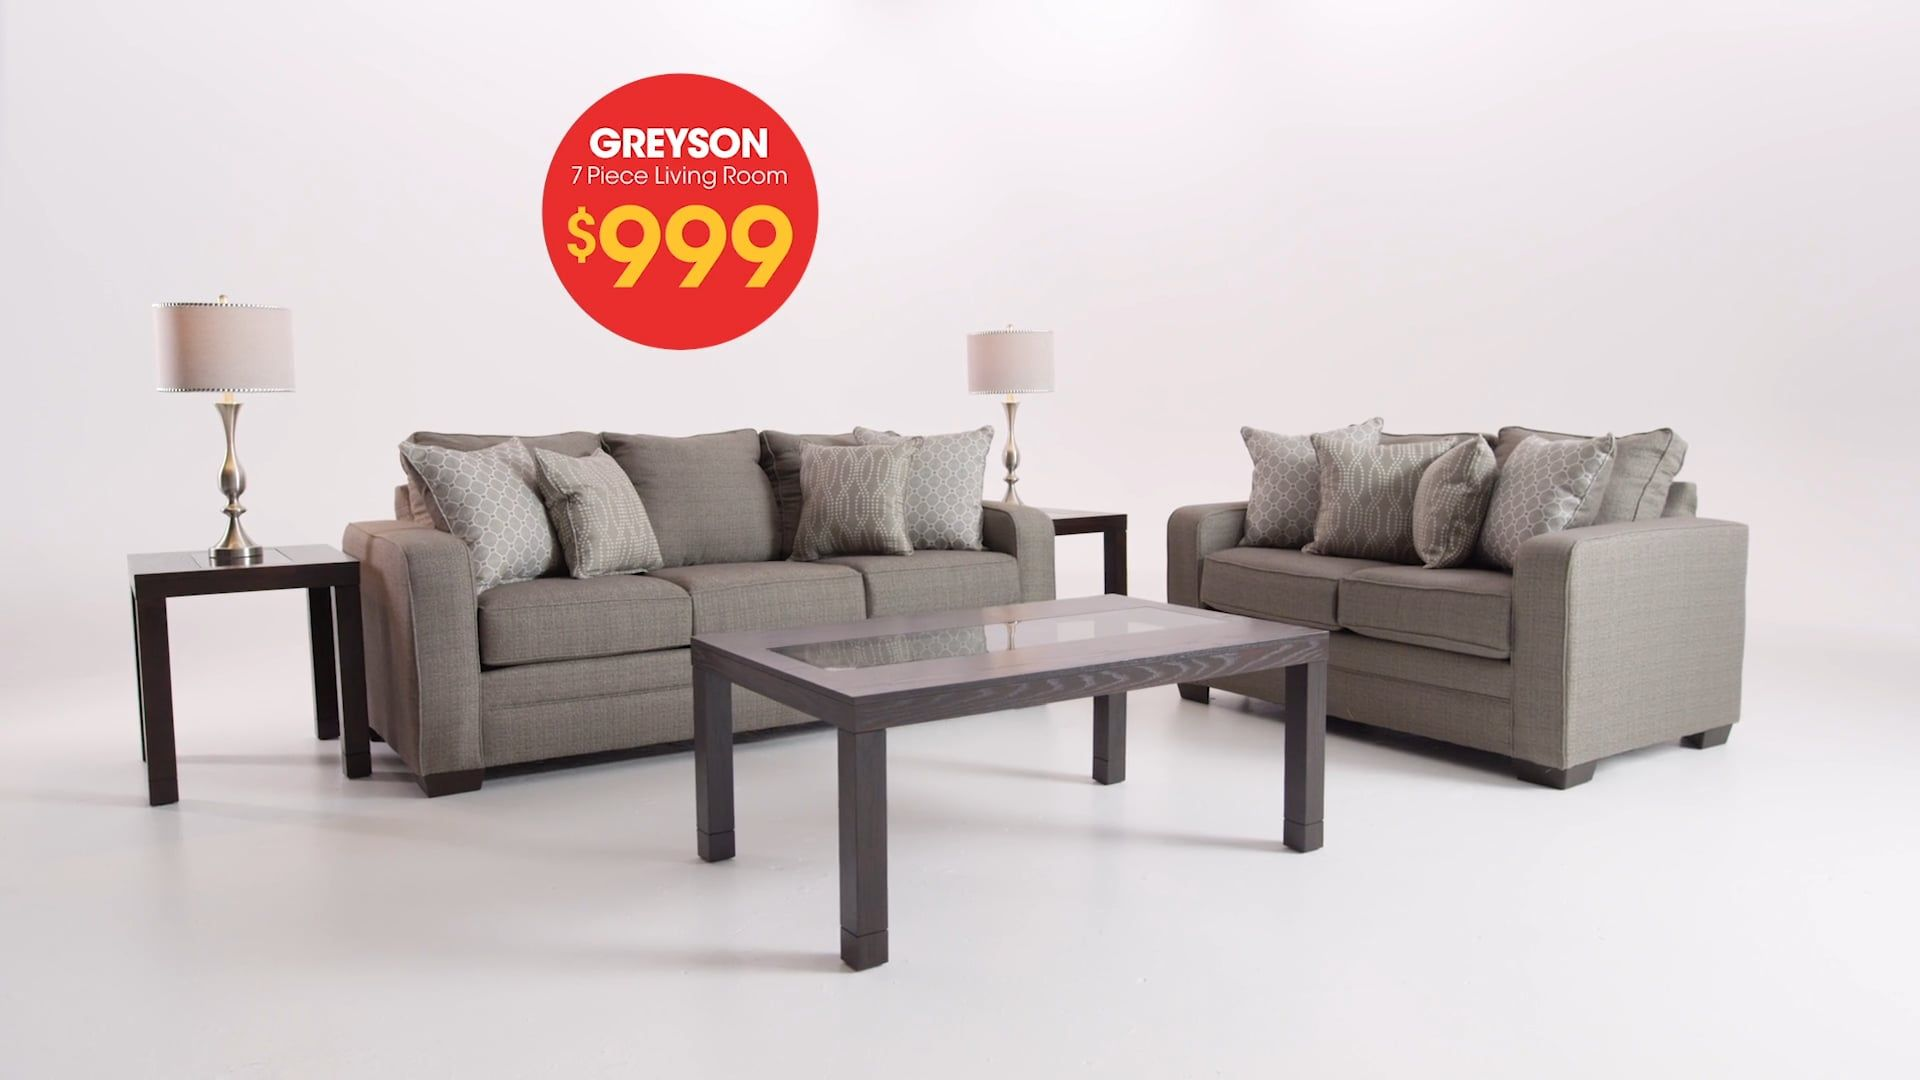 Greyson 7 Piece Living Room Set With Images Living Room Sets